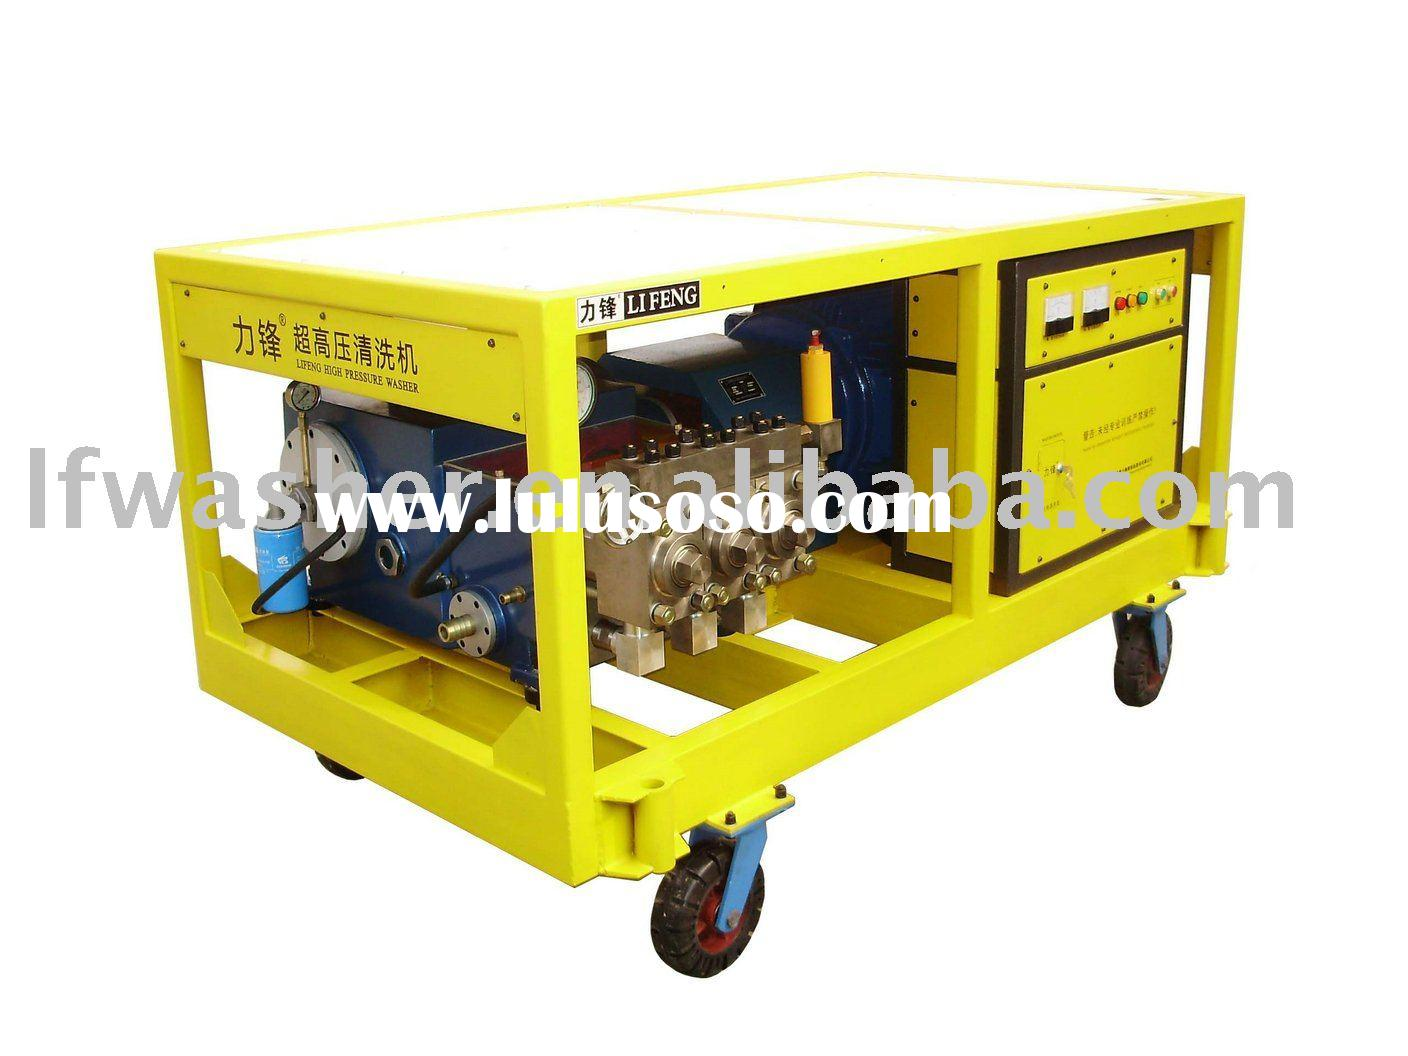 high pressure washer LF-54/52, high pressure cleaner, high pressure water pump cleaner, high pressur